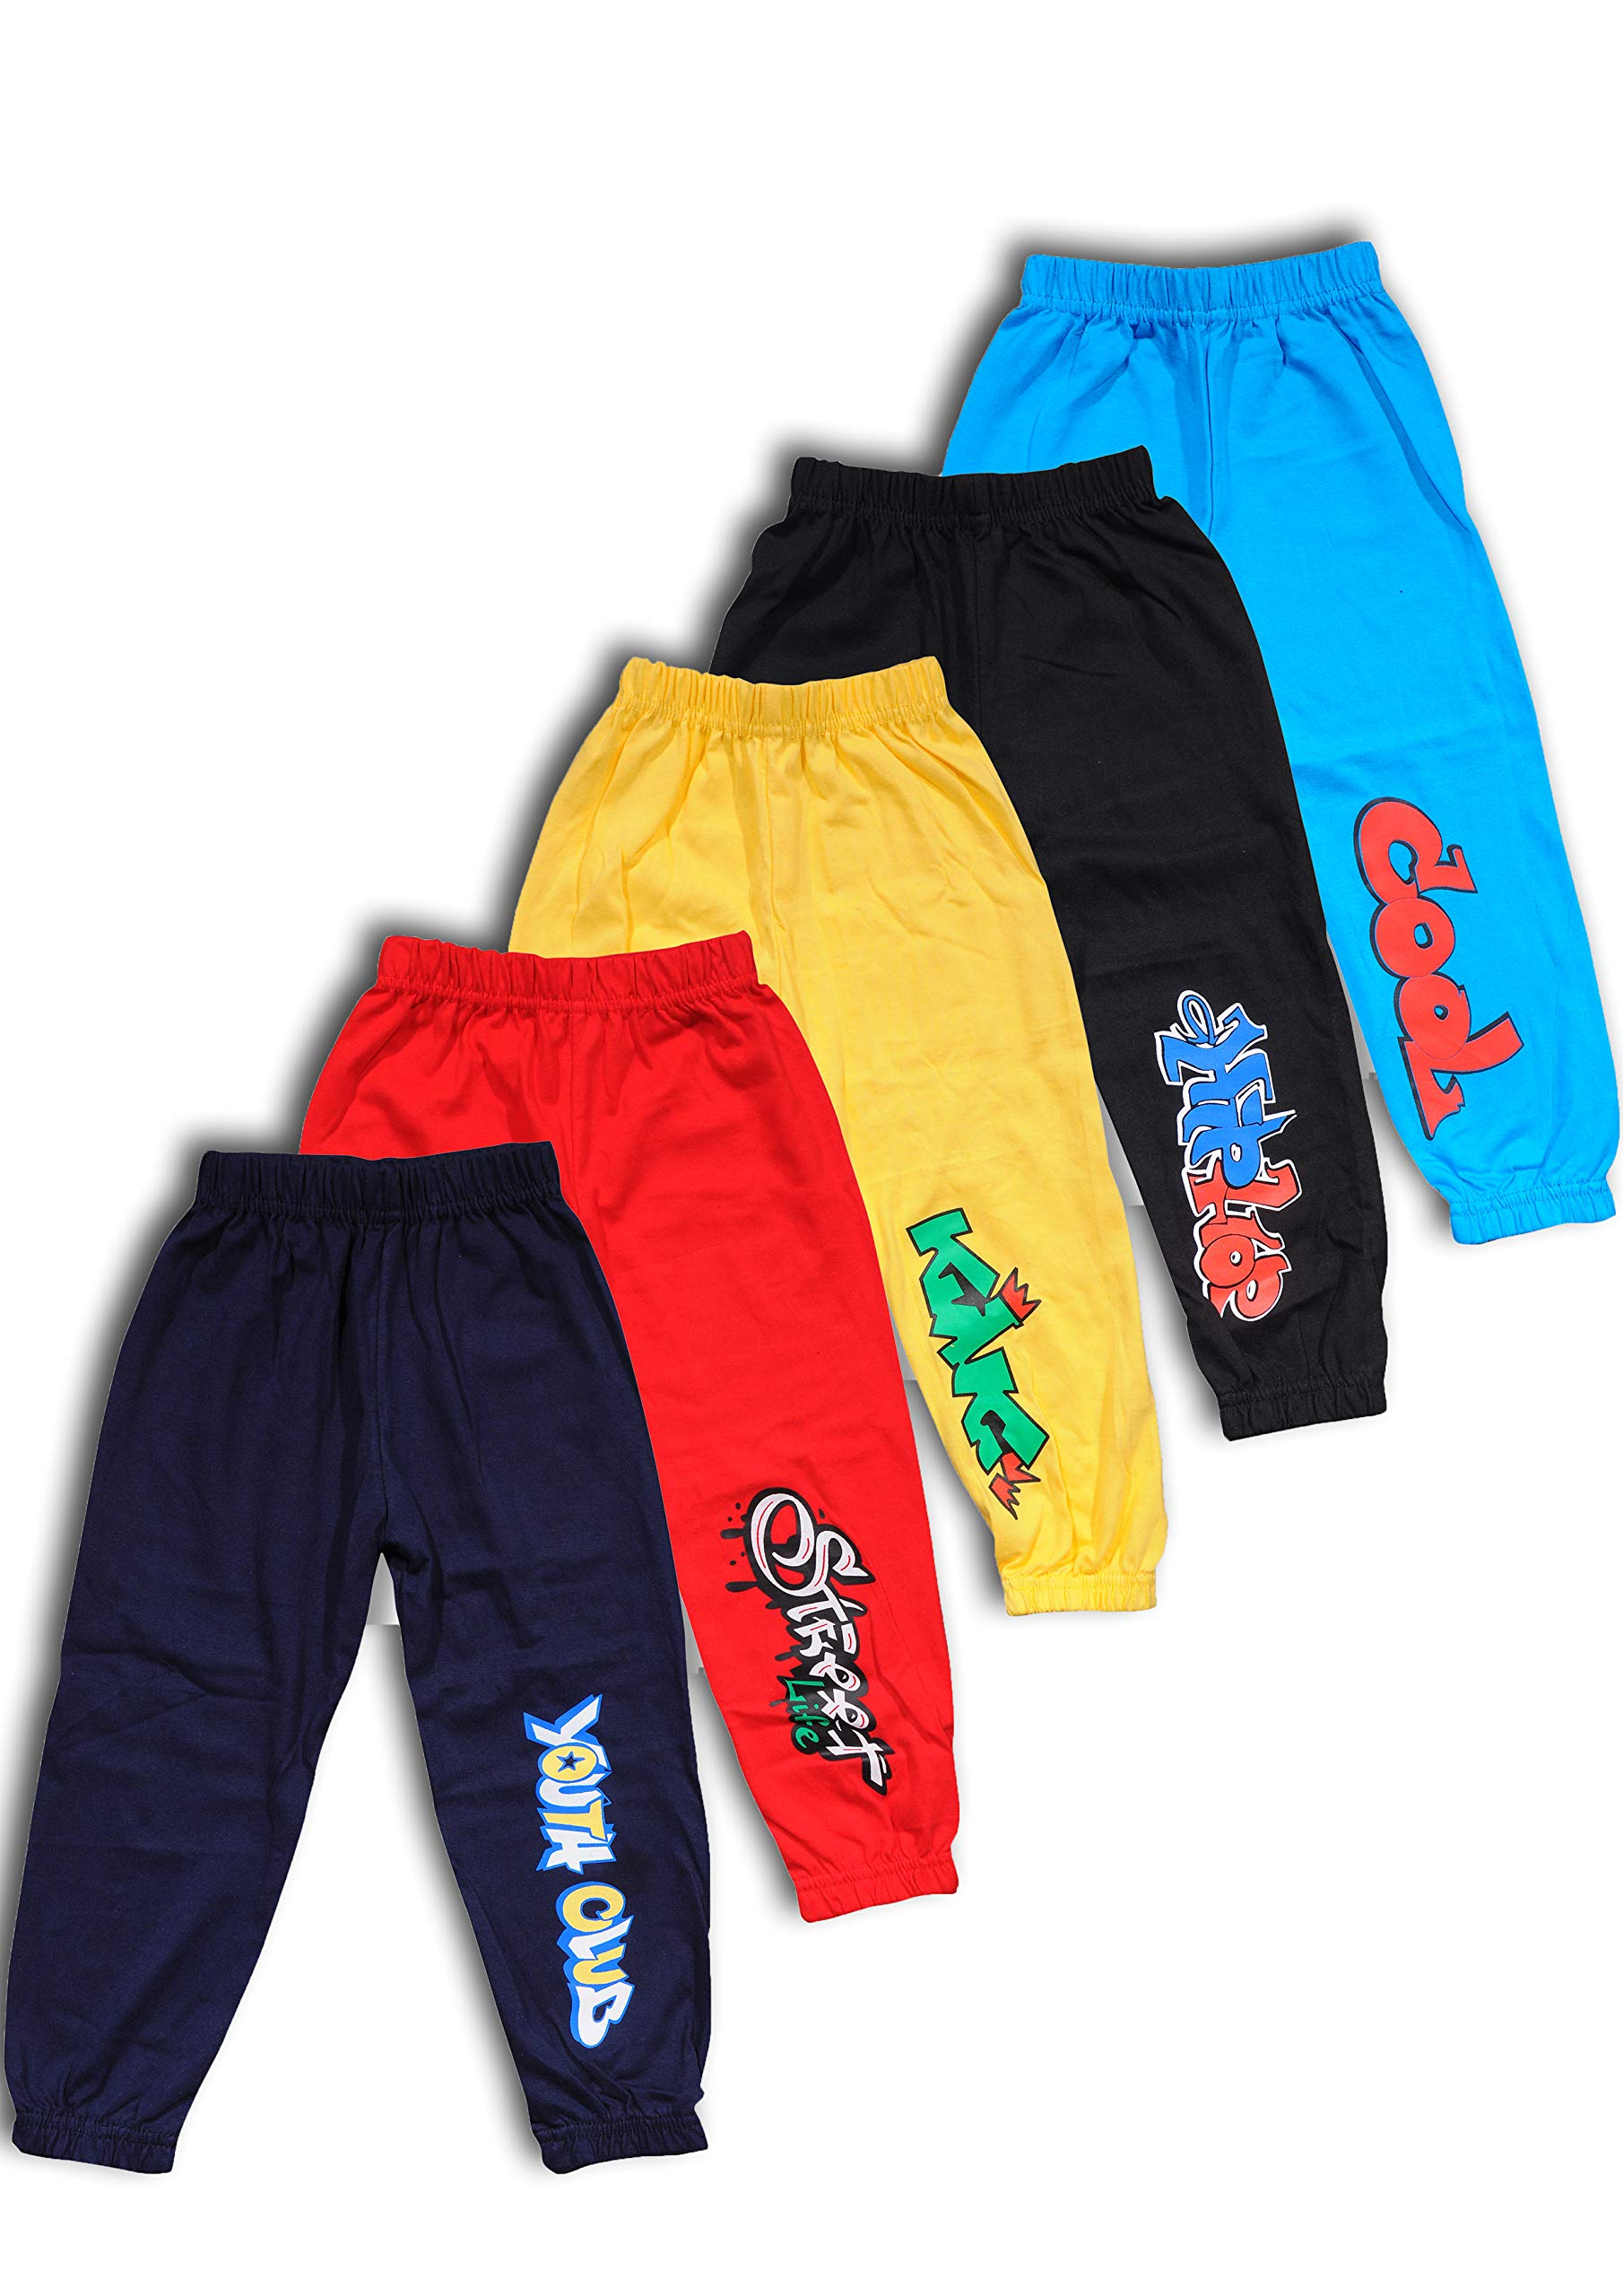 T2F Boys' Cotton Track Pant (Pack of 5, Multicolour) product image